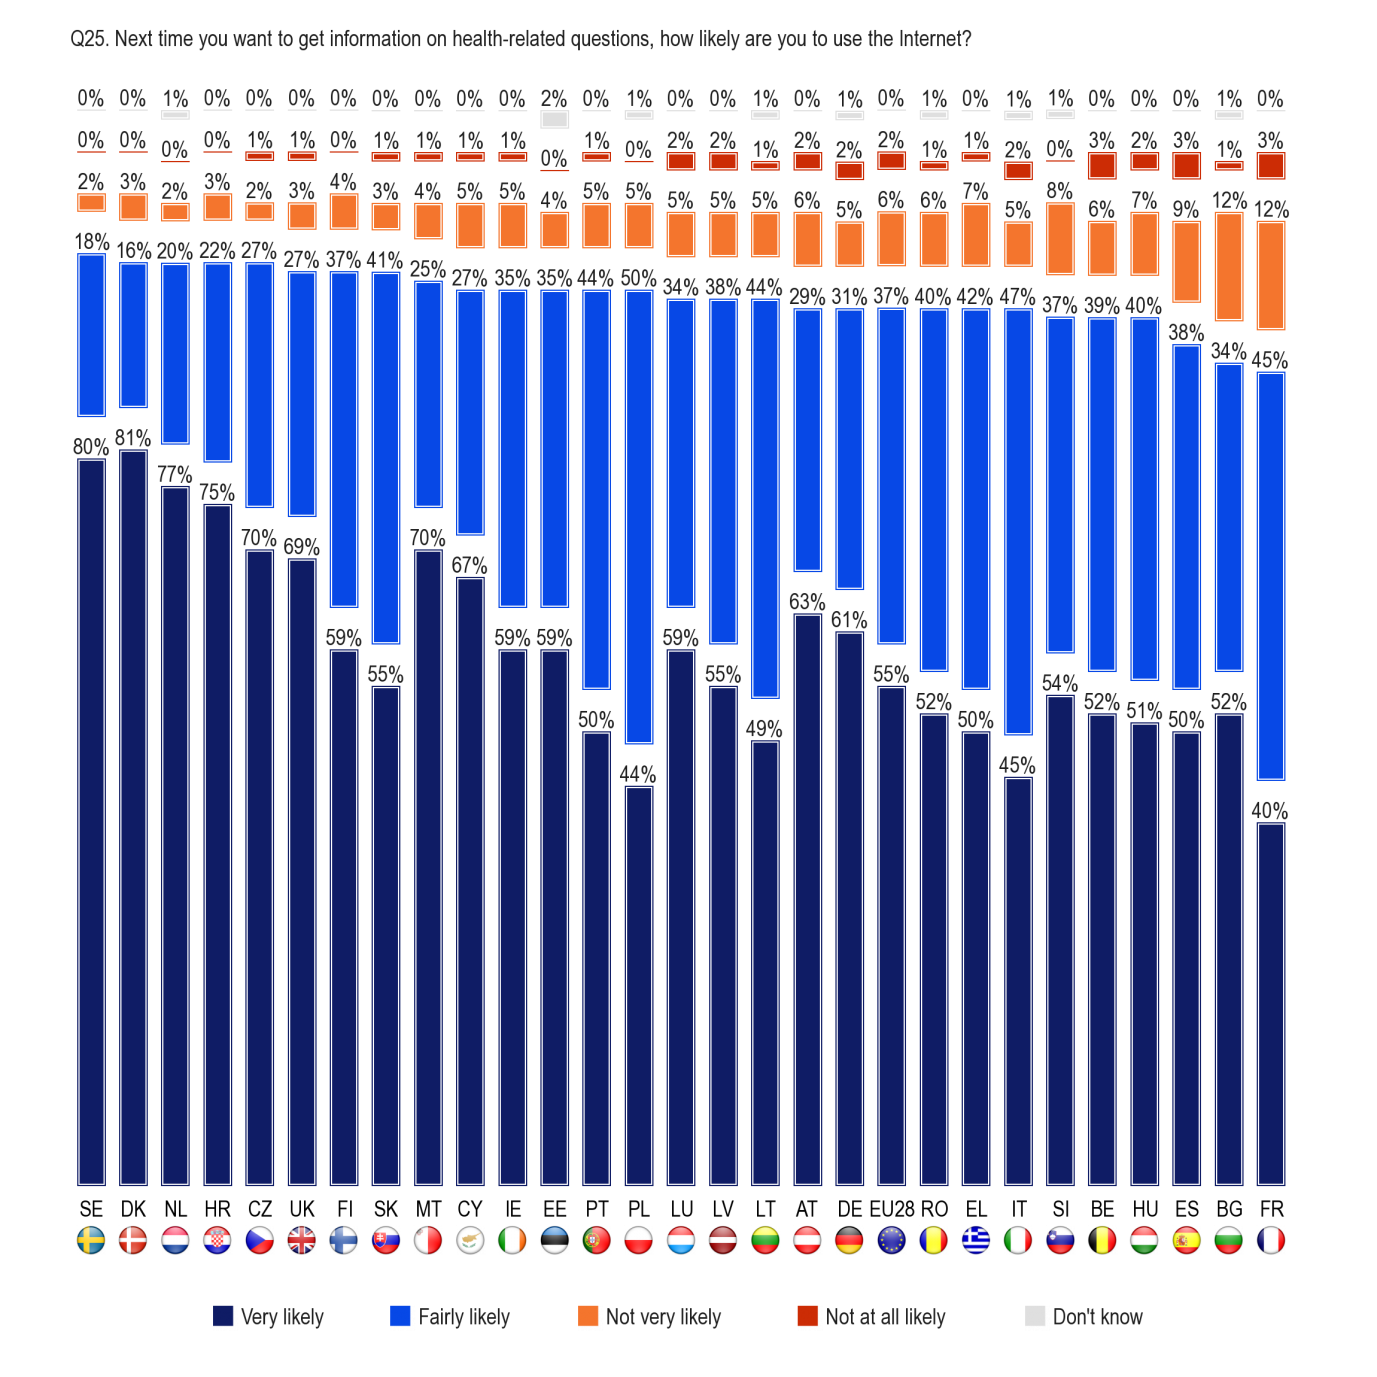 FLASH EUROBAROMETER At least nine out of ten people in all but three Member States say that they are likely to use the Internet the next time they want information on health-related questions.